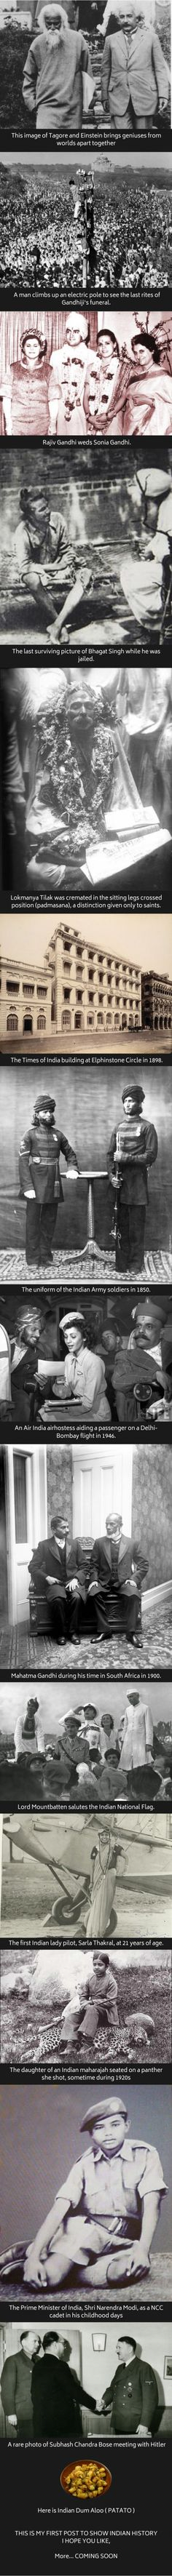 Old INDIAN snap you have to see ( part 1 ) More memes, funny videos and pics on Rare Pictures, Historical Pictures, Rare Photos, Best Funny Pictures, Old Photos, Funny Pics, Funny Jokes, Funny Art, Vintage Photos